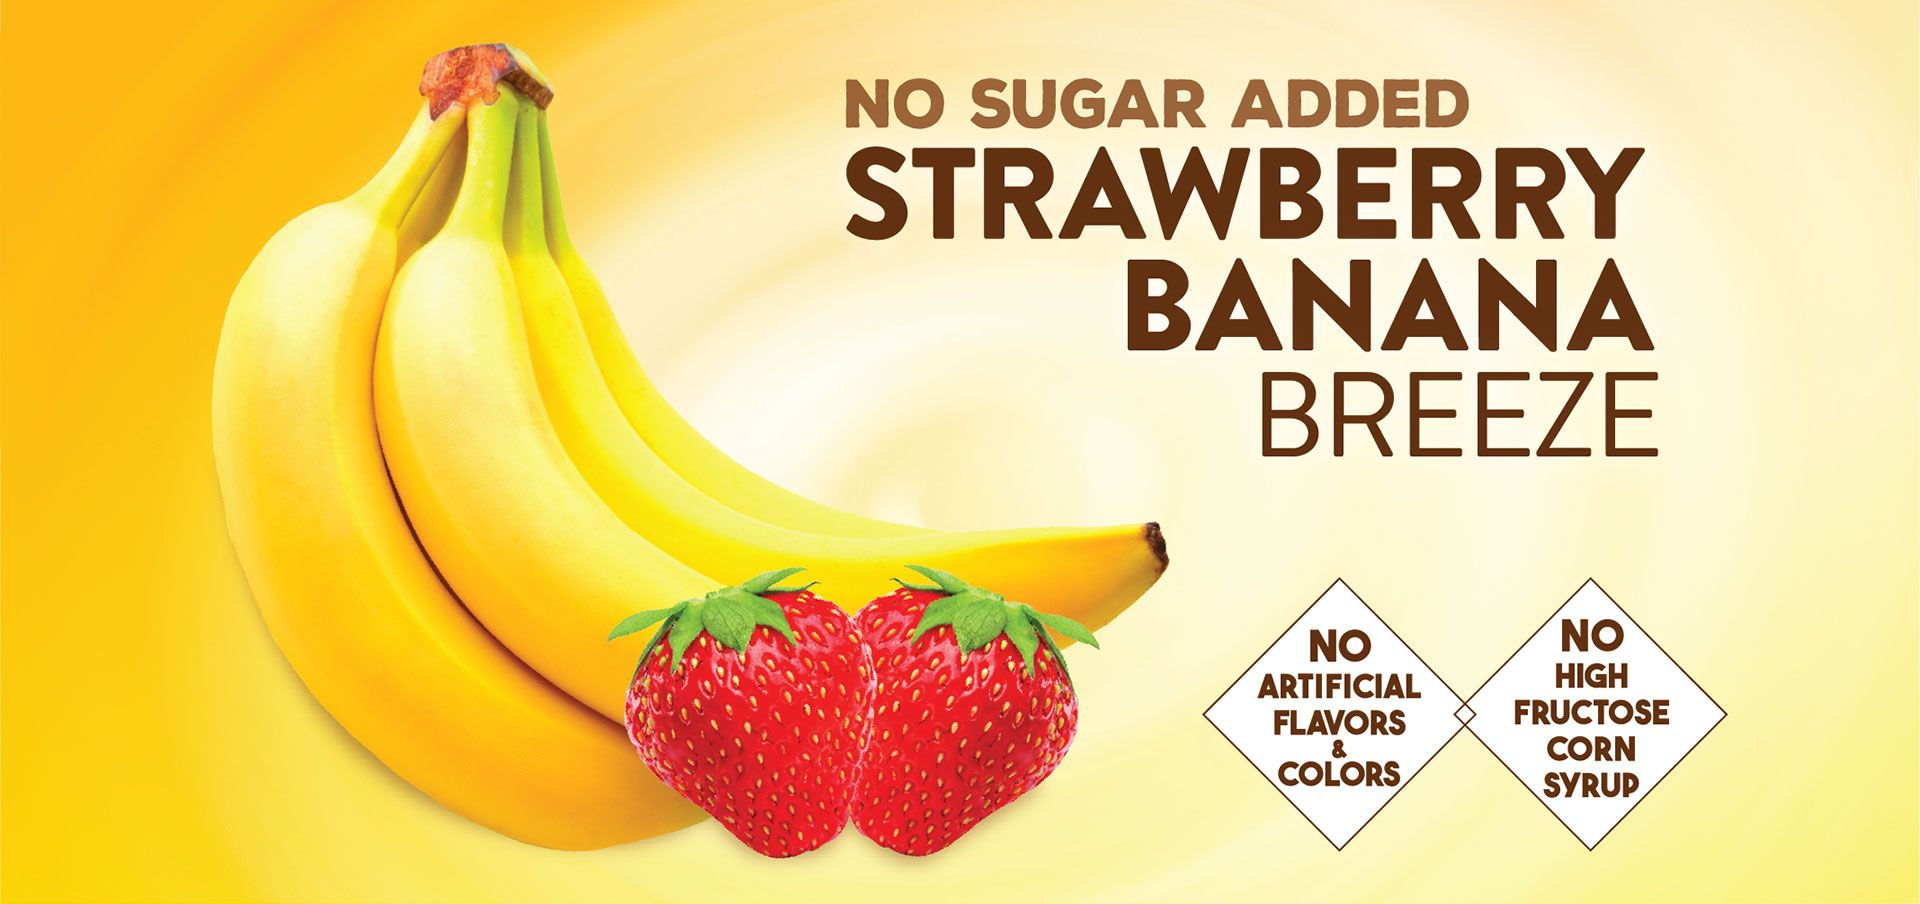 strawberry banana breeze label image